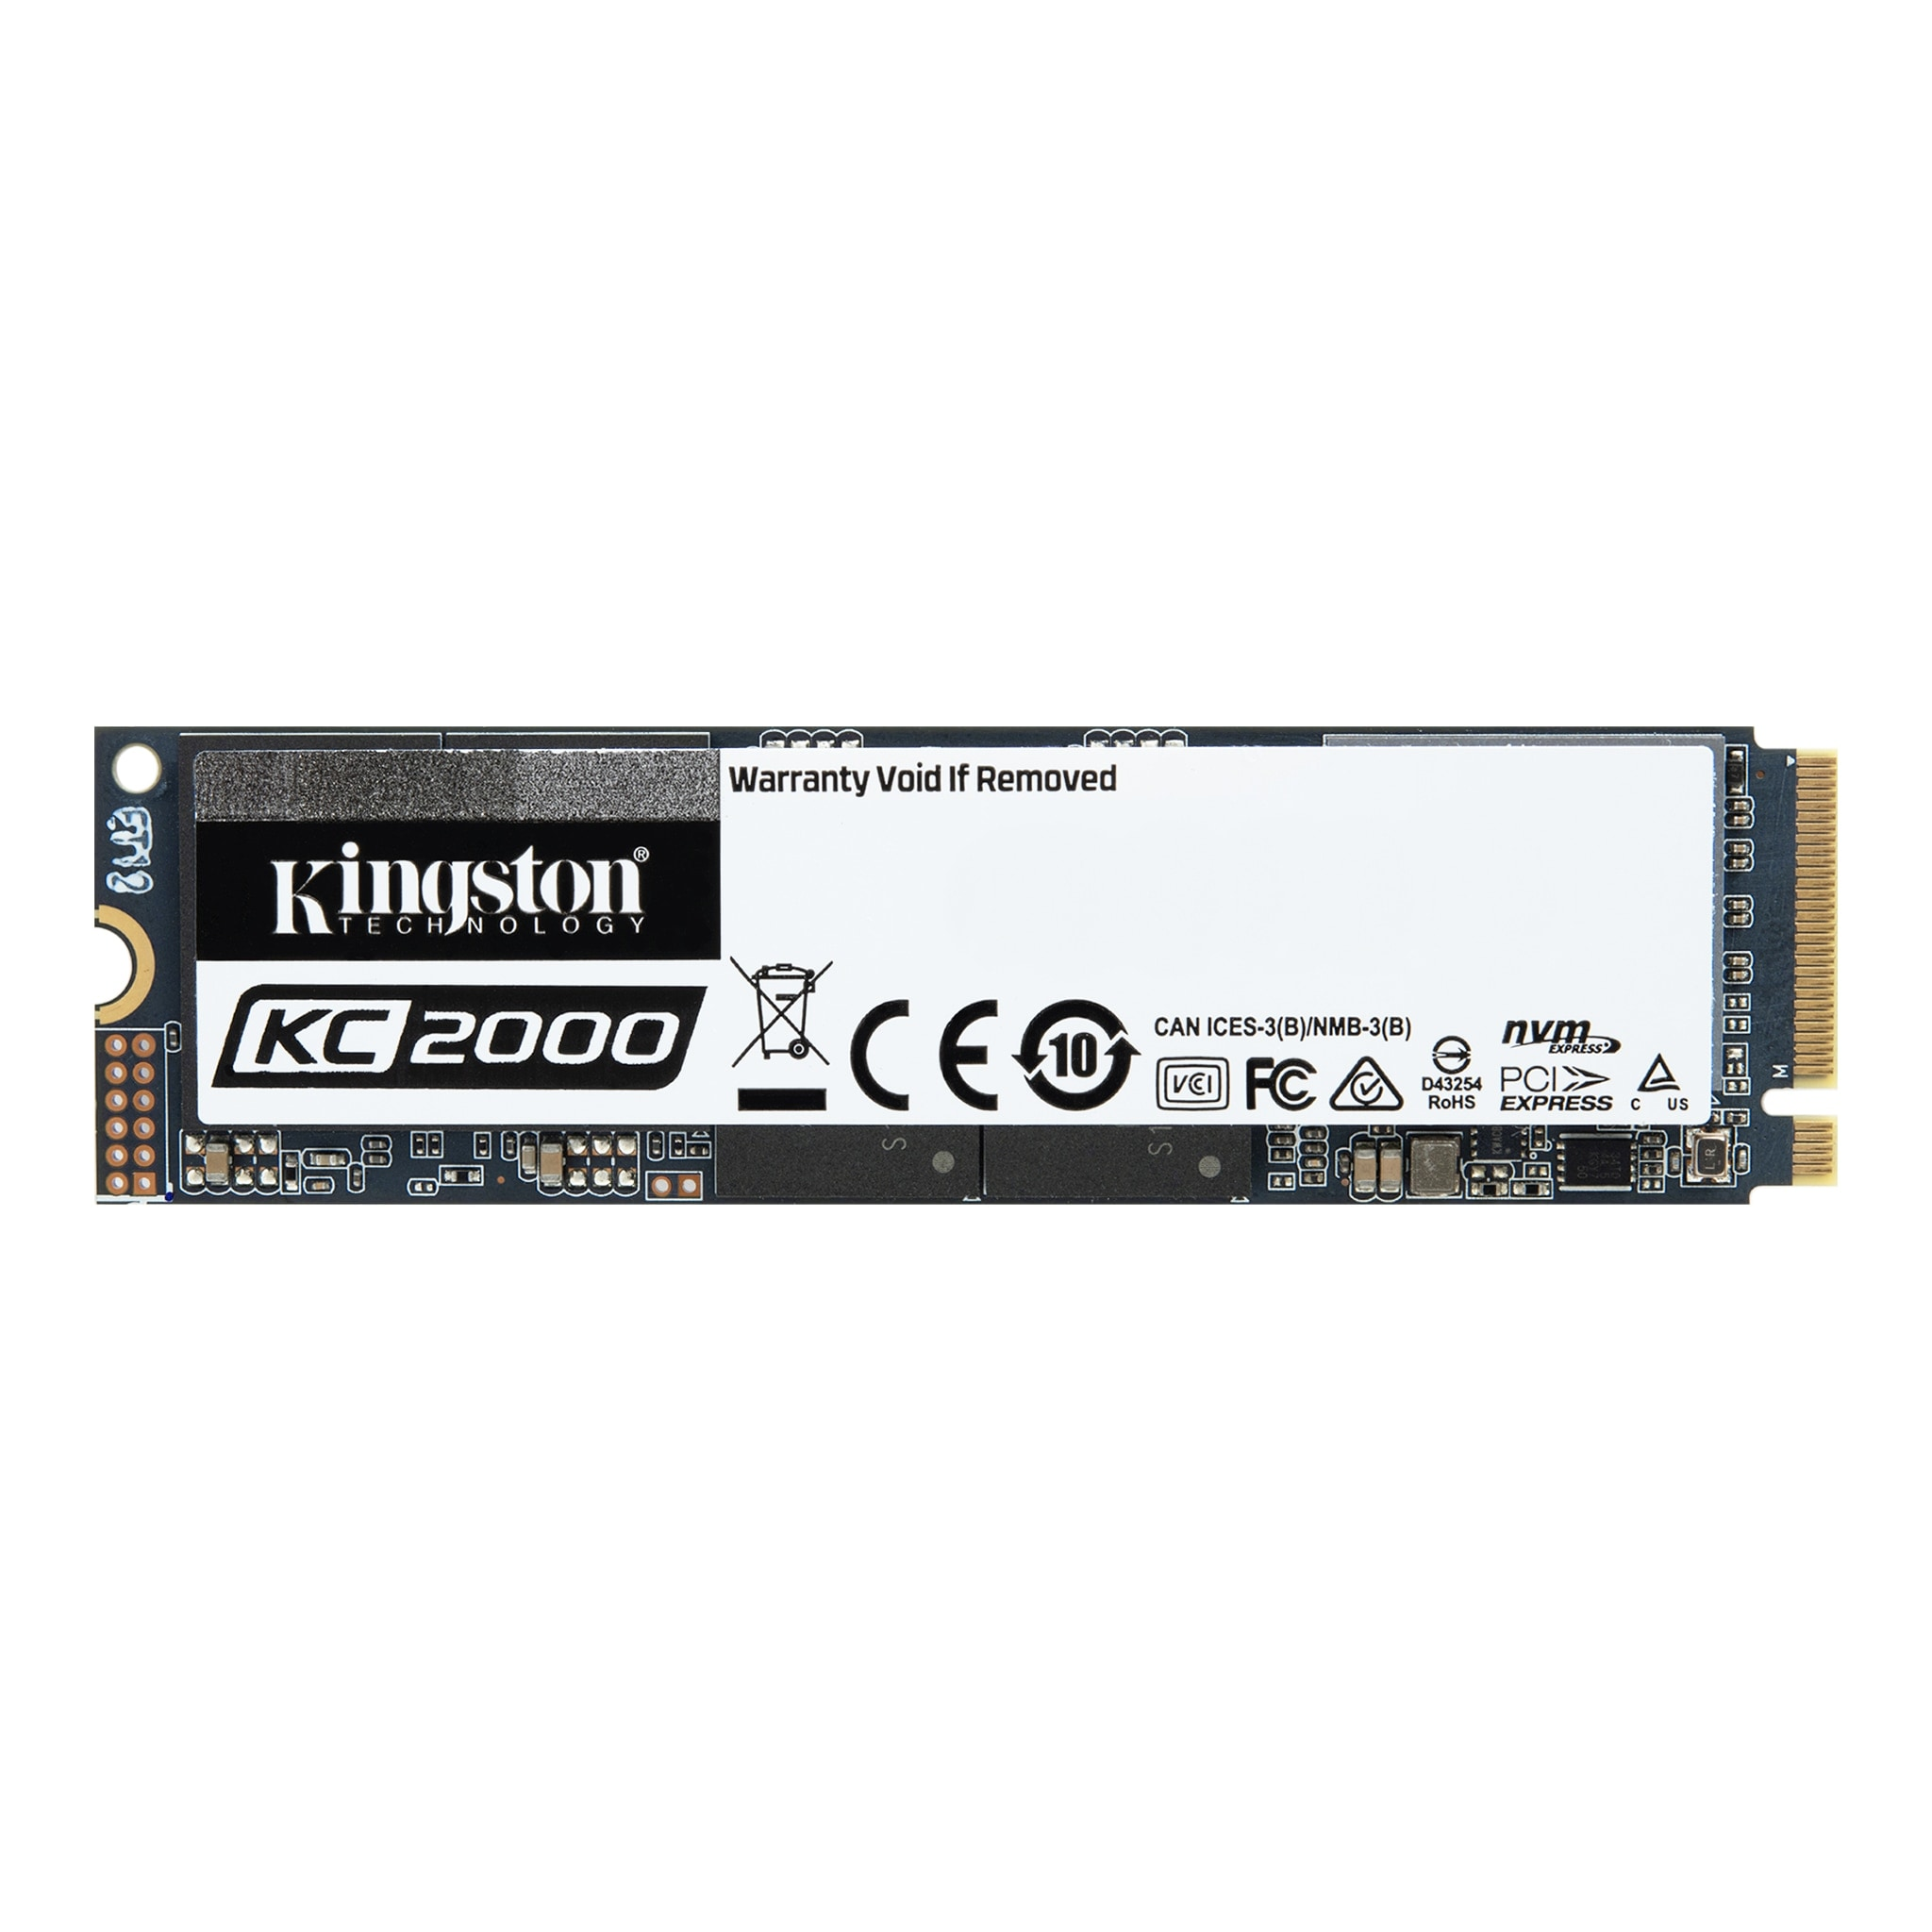 KC2000 Solid-State Drive (SSD) - M 2 NVMe 3D NAND – 250GB - 2TB